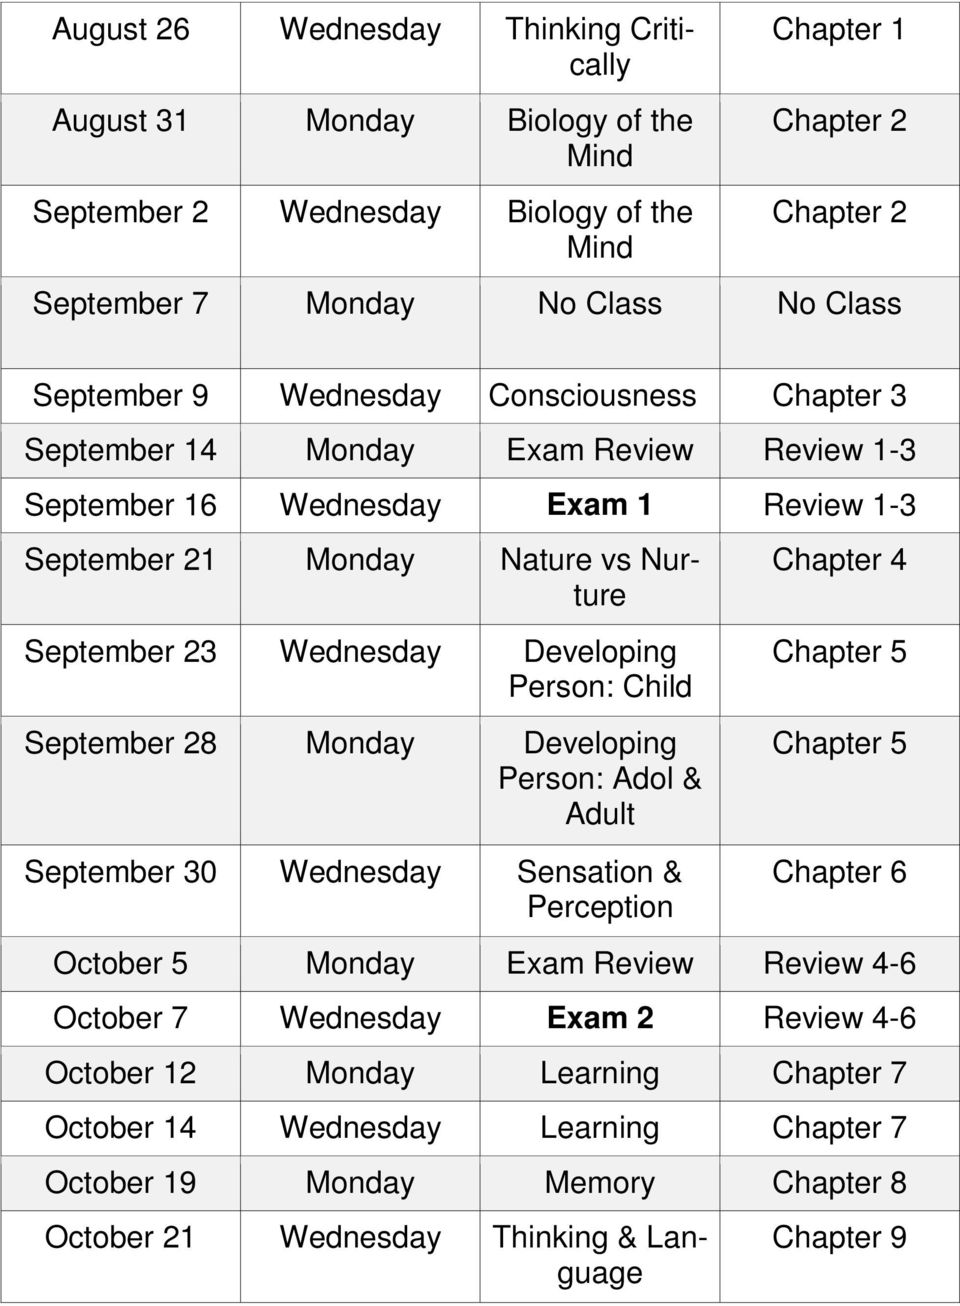 Developing Person: Child September 28 Monday Developing Person: Adol & Adult Chapter 4 Chapter 5 Chapter 5 September 30 Wednesday Sensation & Perception Chapter 6 October 5 Monday Exam Review